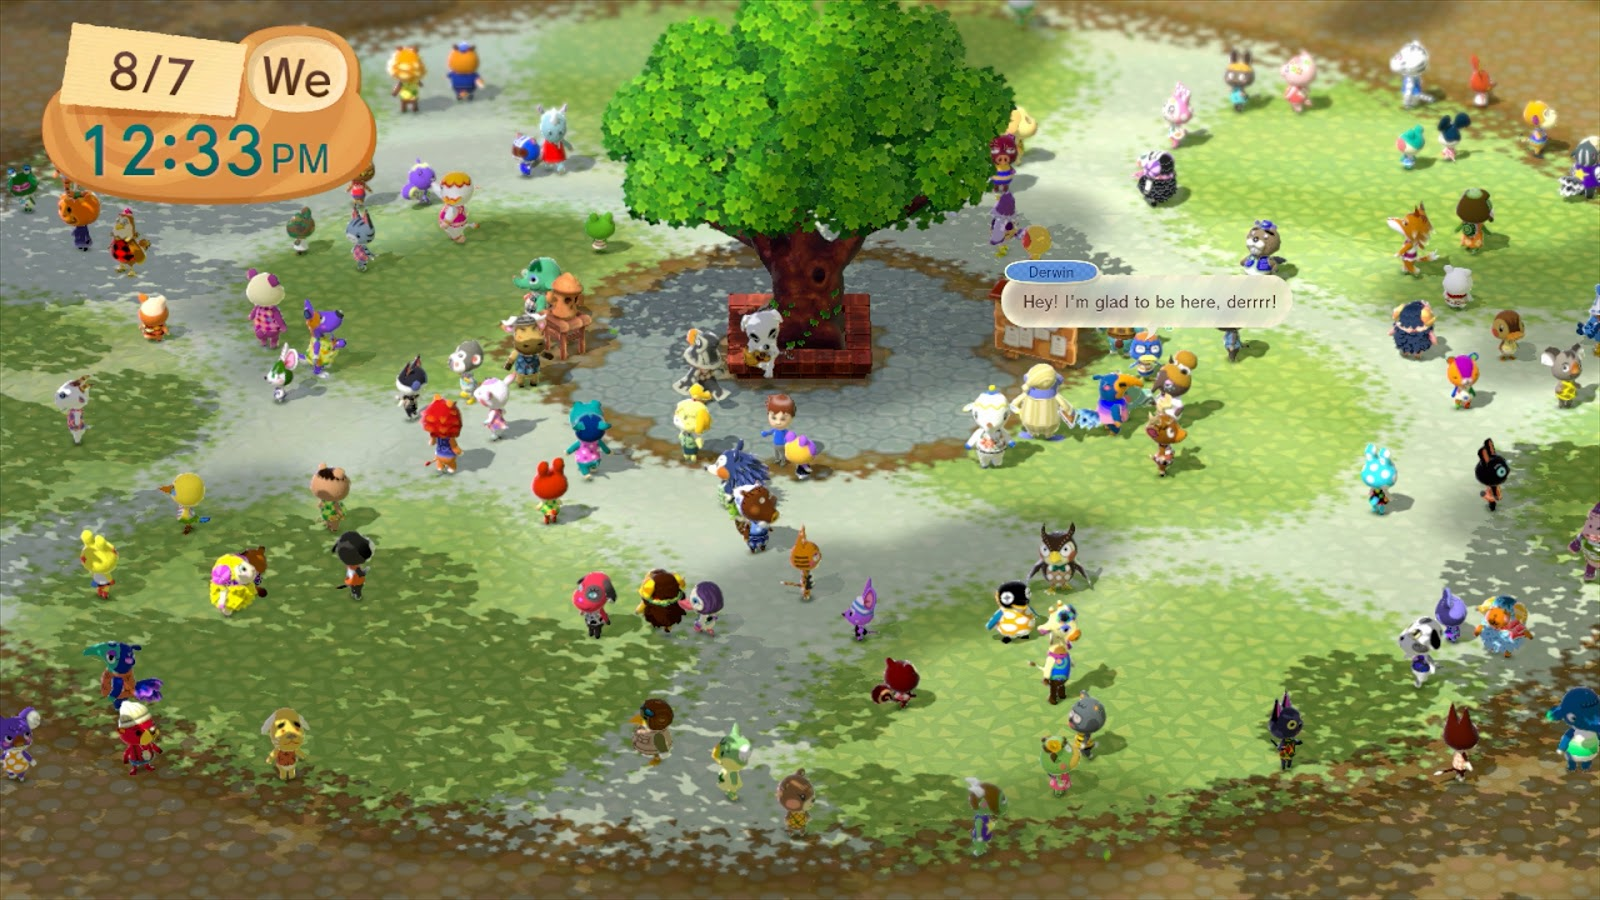 Animal crossing wii u at quando a nintendo vai resistir for Agrandissement maison animal crossing wii